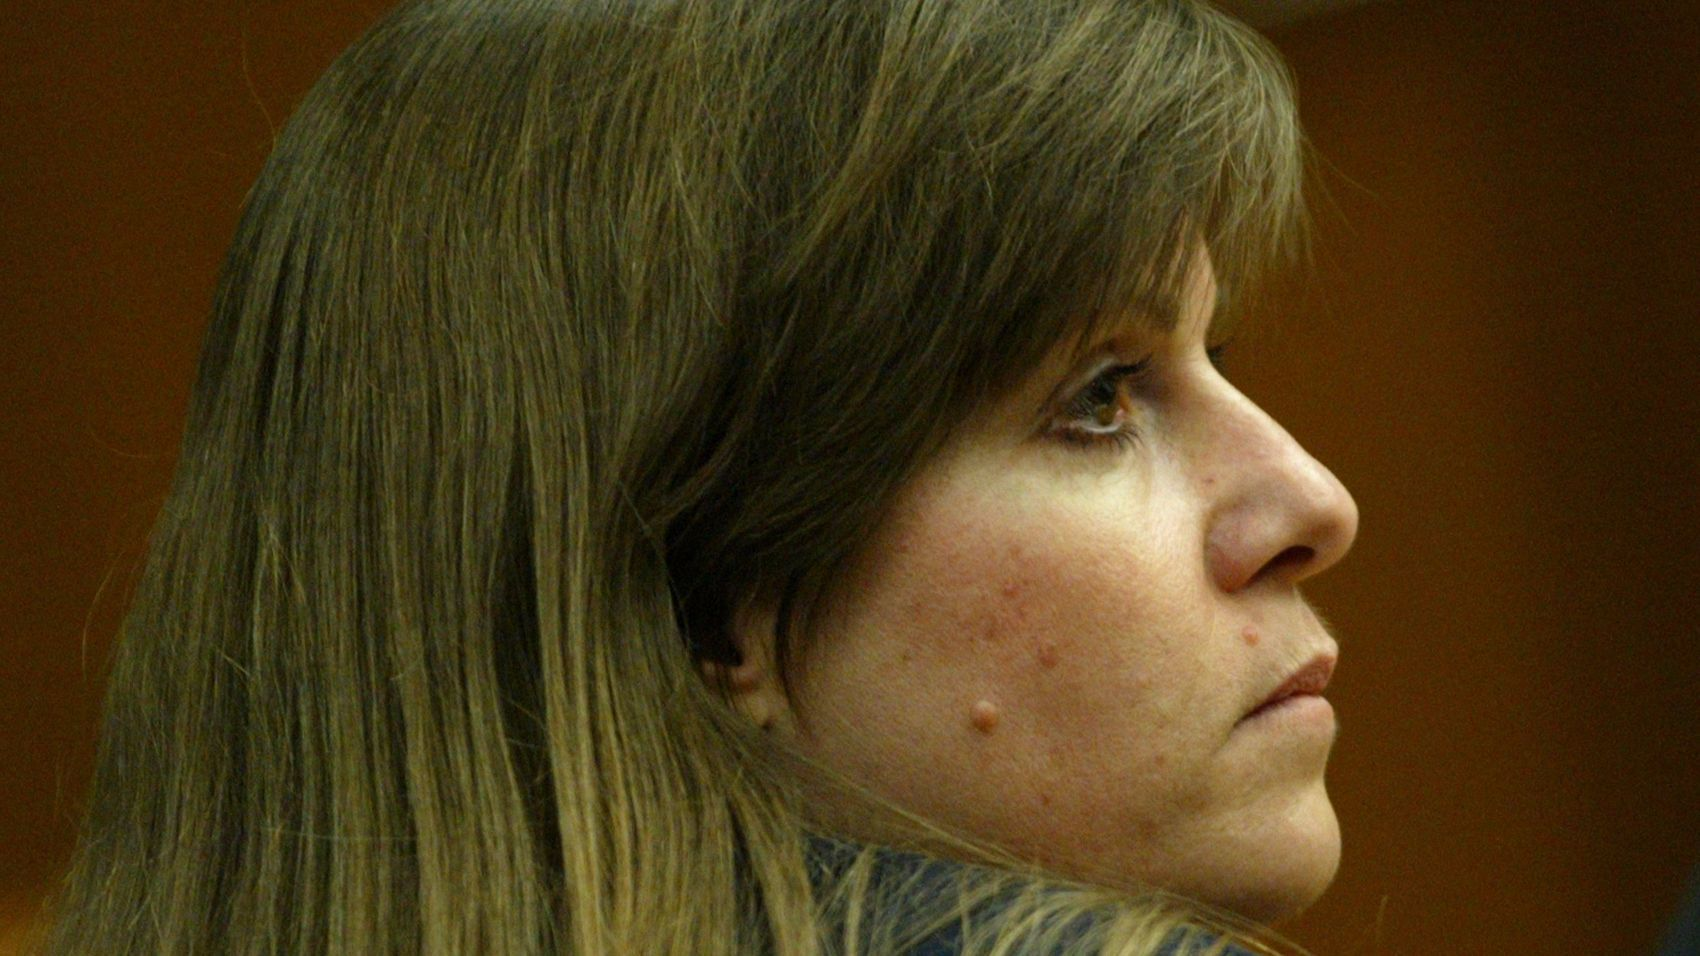 Marcia Ann Johnson in court as she was convicted of murder in the 1999 killing of Jack Irwin.